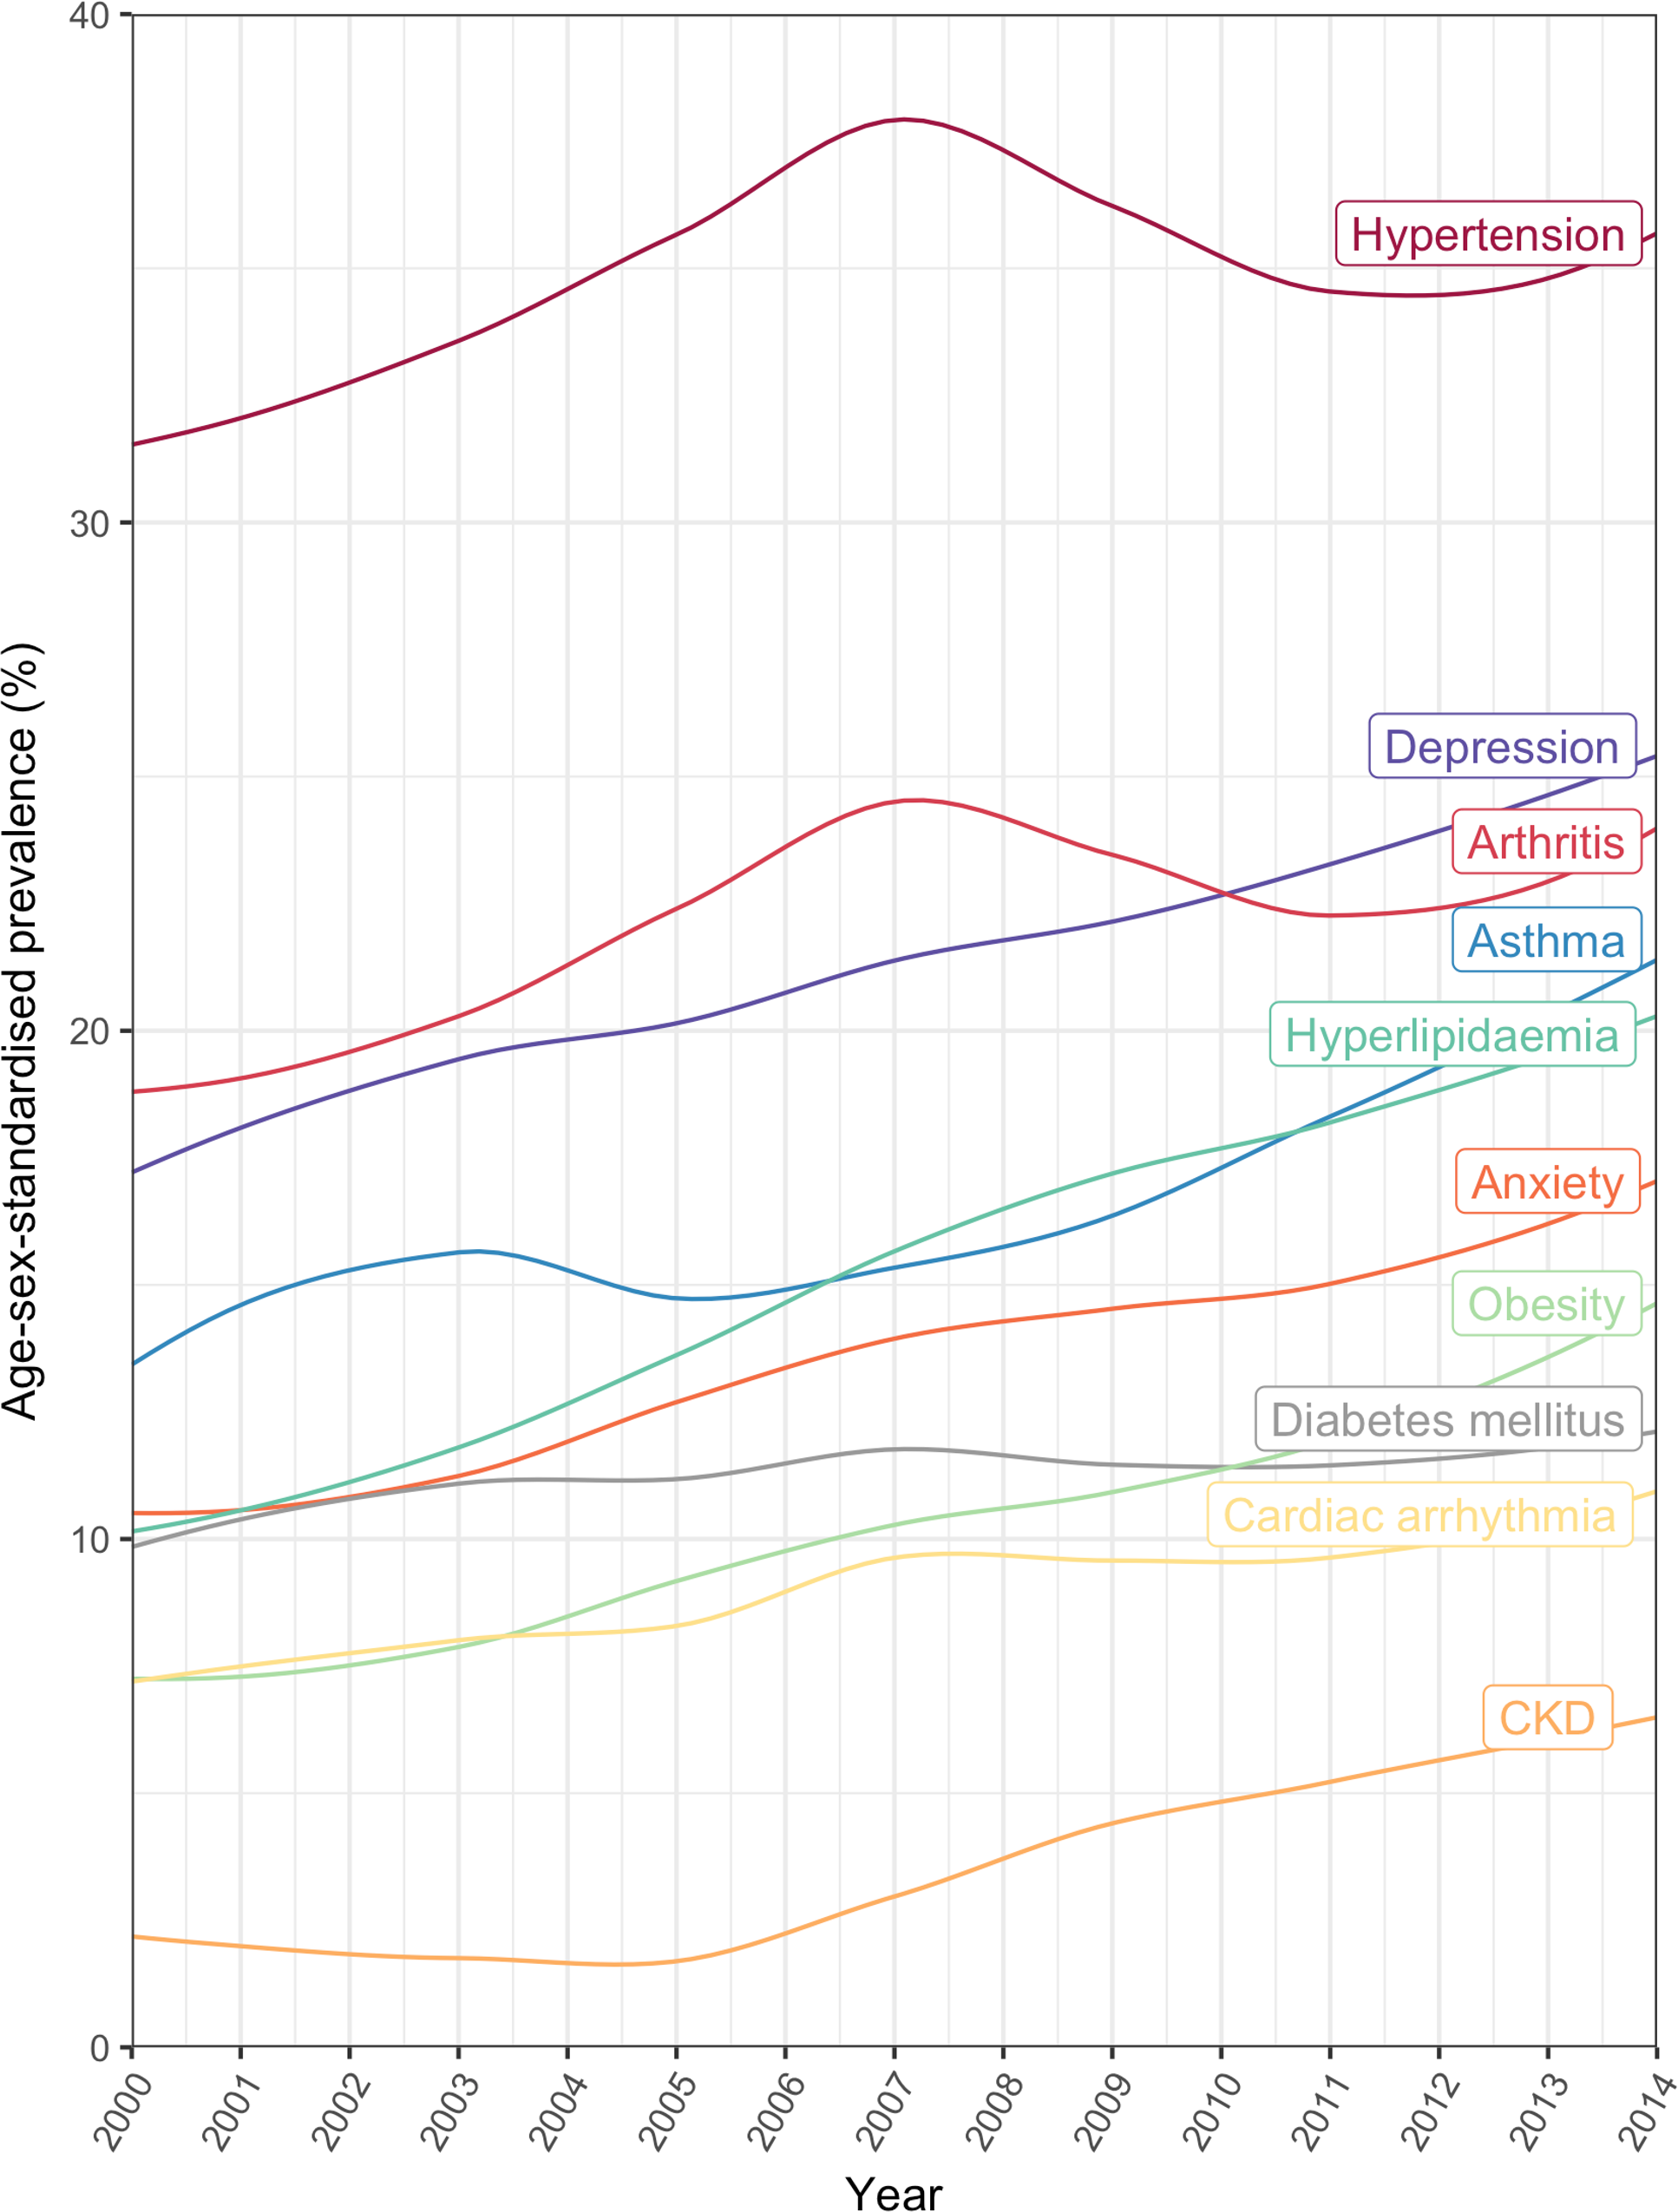 Annual prevalence of the 10 most common comorbidities in patients with incident cardiovascular disease between 2000 and 2014.